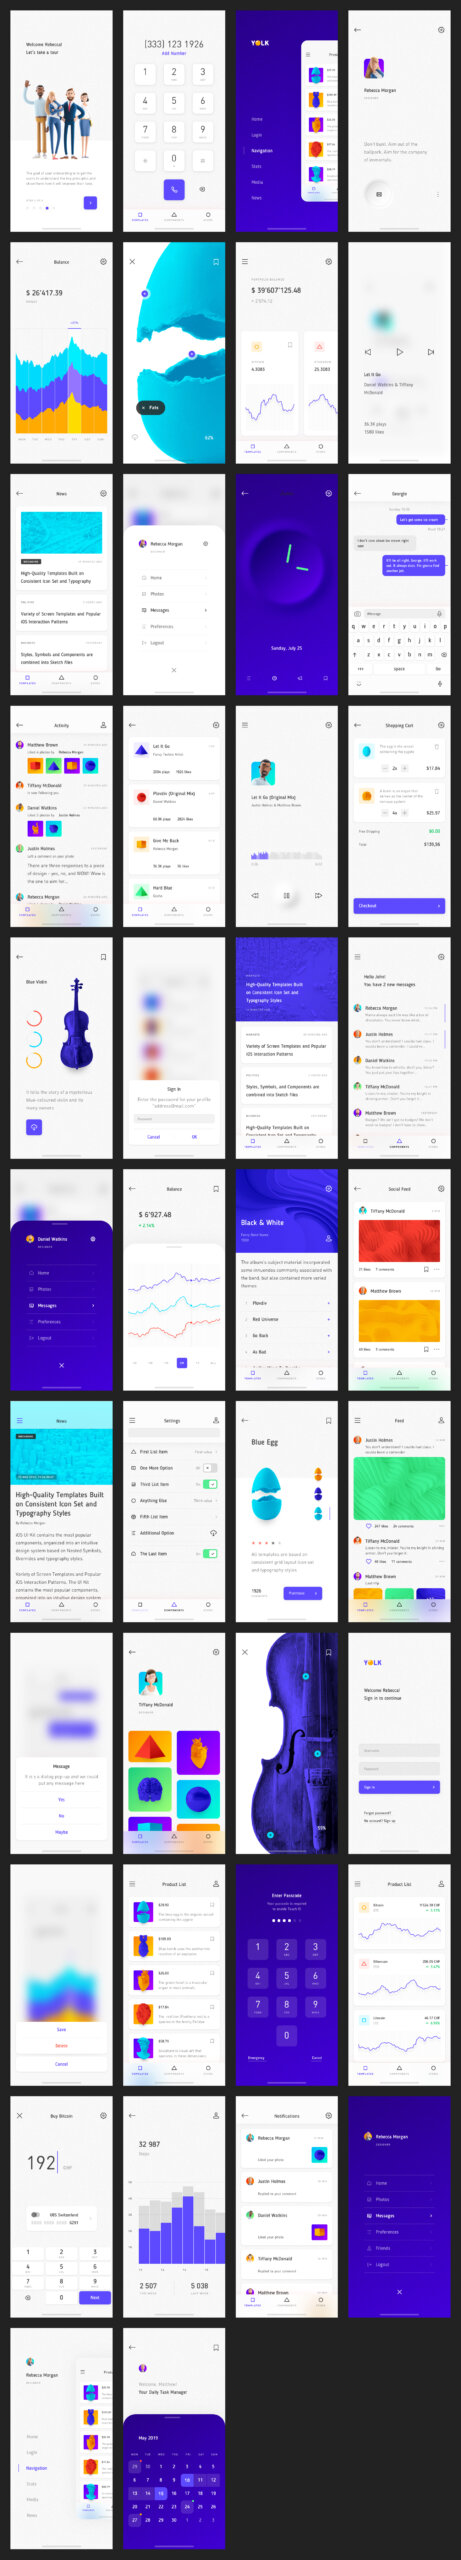 Yolk Free iOS UI Kit Design System for Sketch from UIGarage